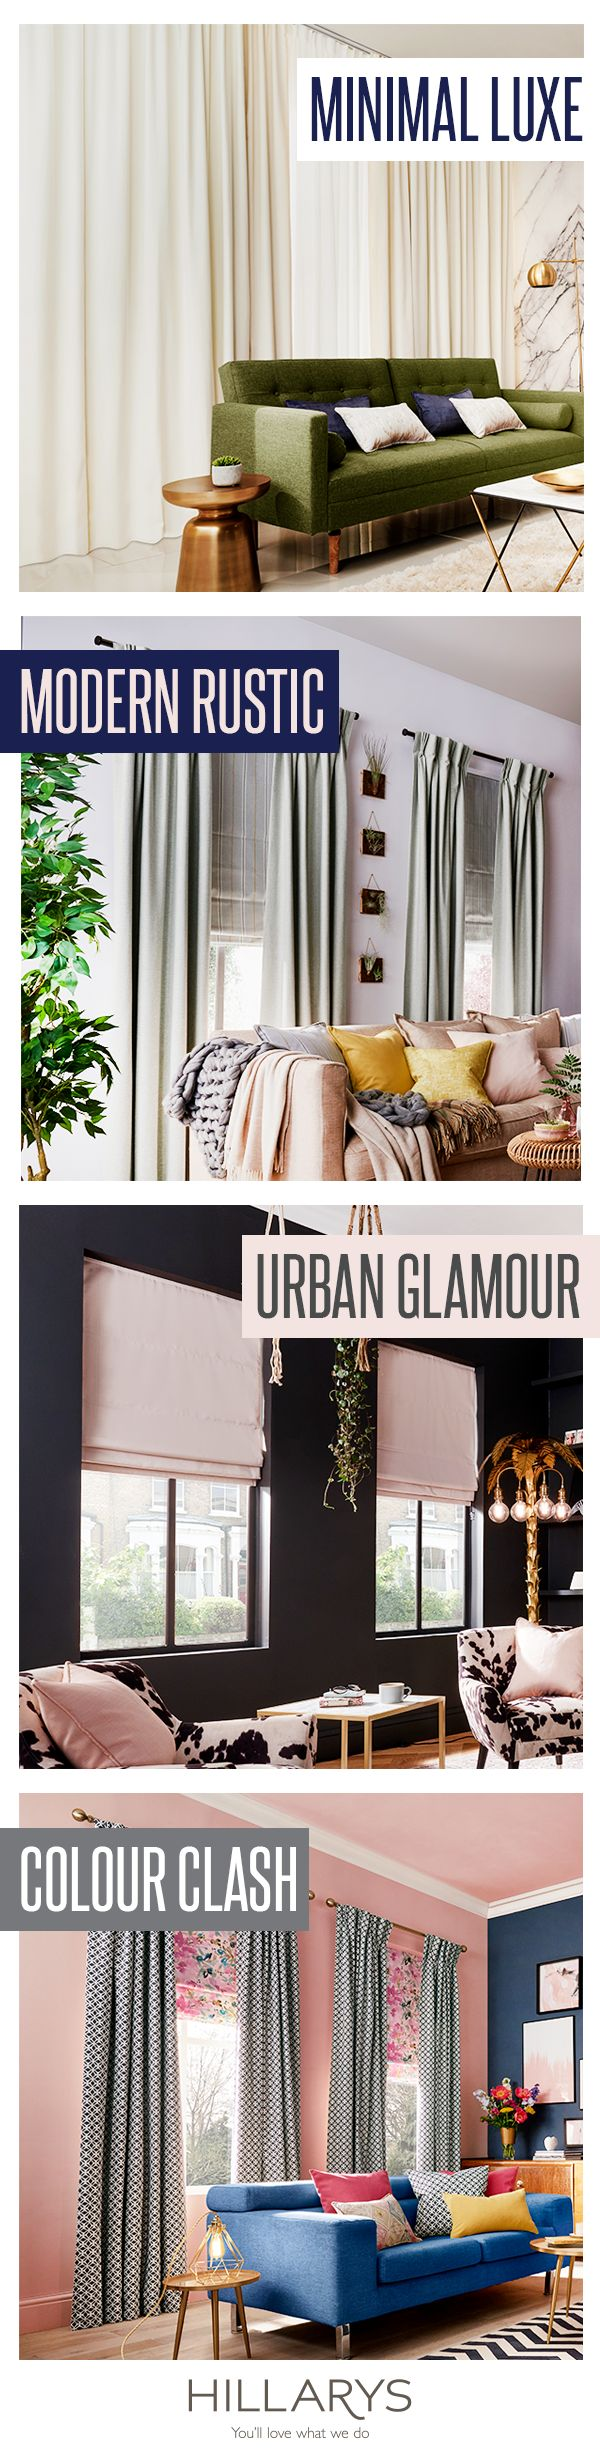 NEW sensational styles to choose from! We've picked out four interior looks we know you'll love from our new collection of curtains and Roman blinds featuring over 300 fabrics #IWANTTHATSTYLE